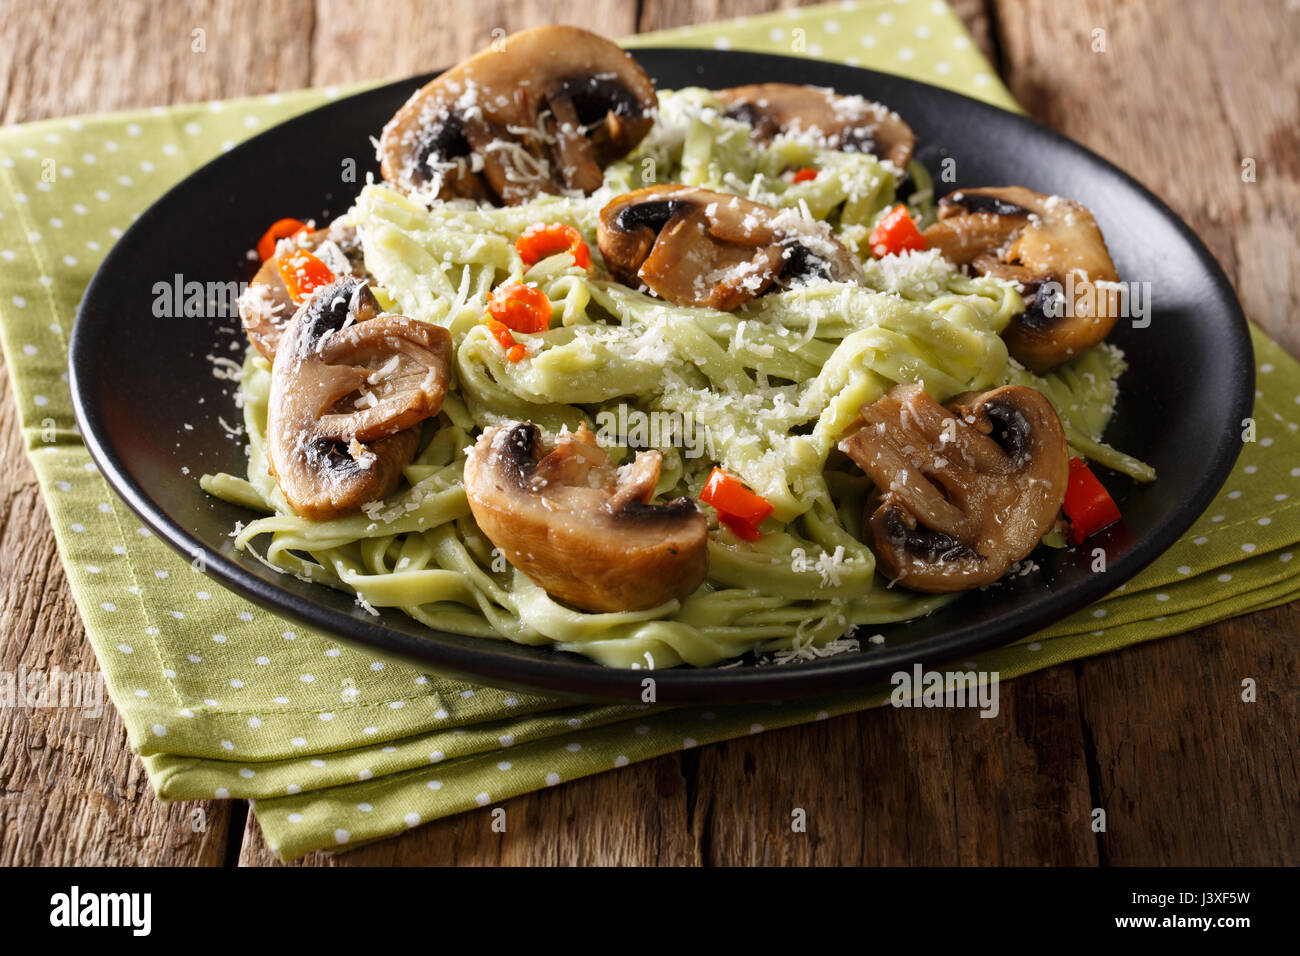 Homemade spinach pasta with fried mushrooms, chili pepper and cheese close-up on a plate. horizontal Stock Photo